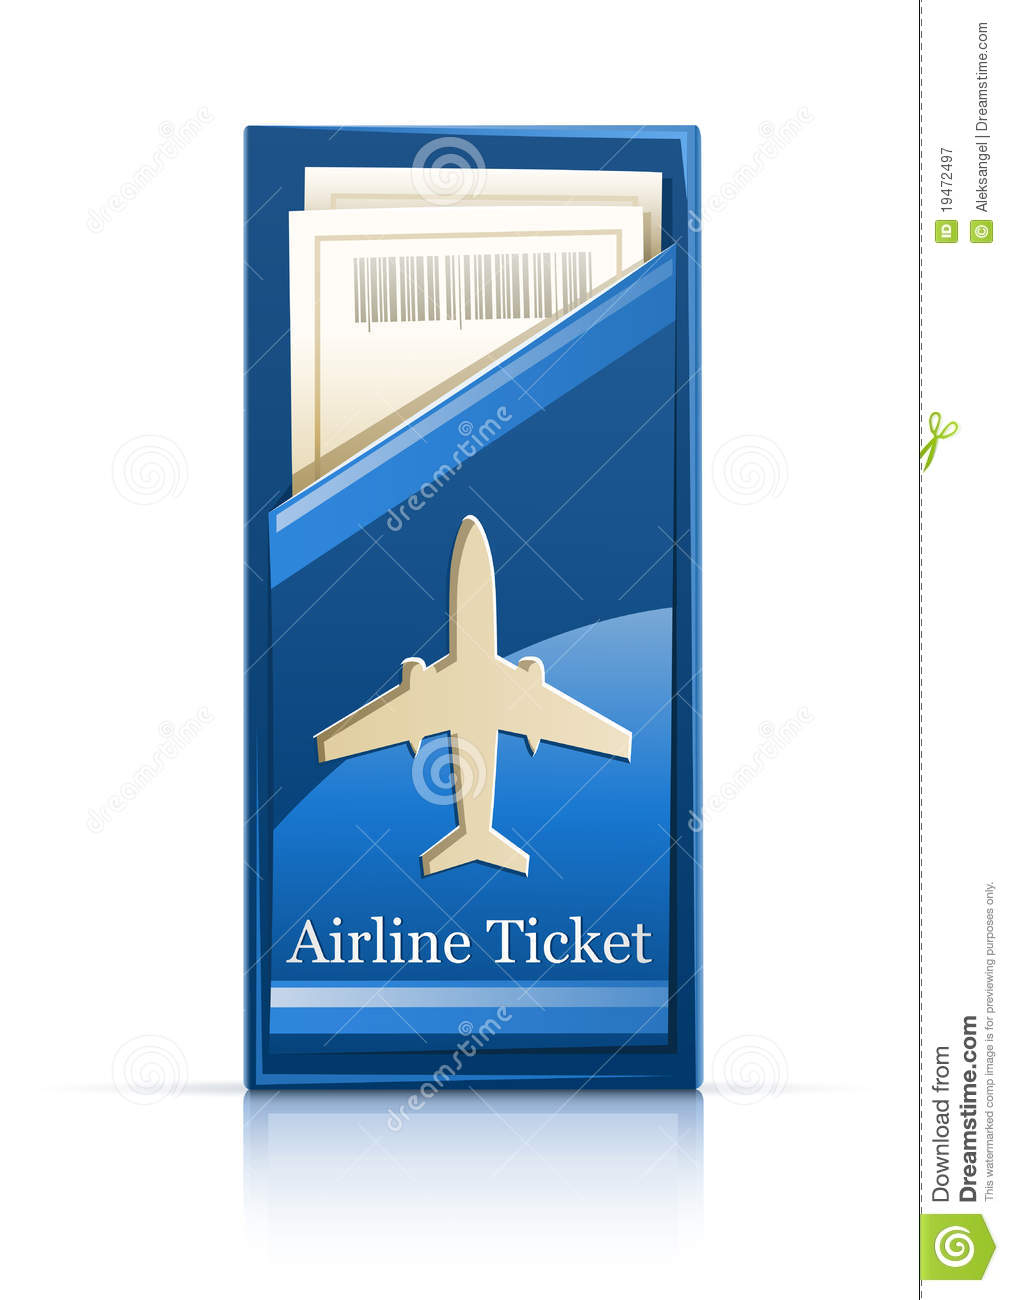 airline ticket royalty free stock photography image paper airplane clipart black and white paper airplane clipart white and black